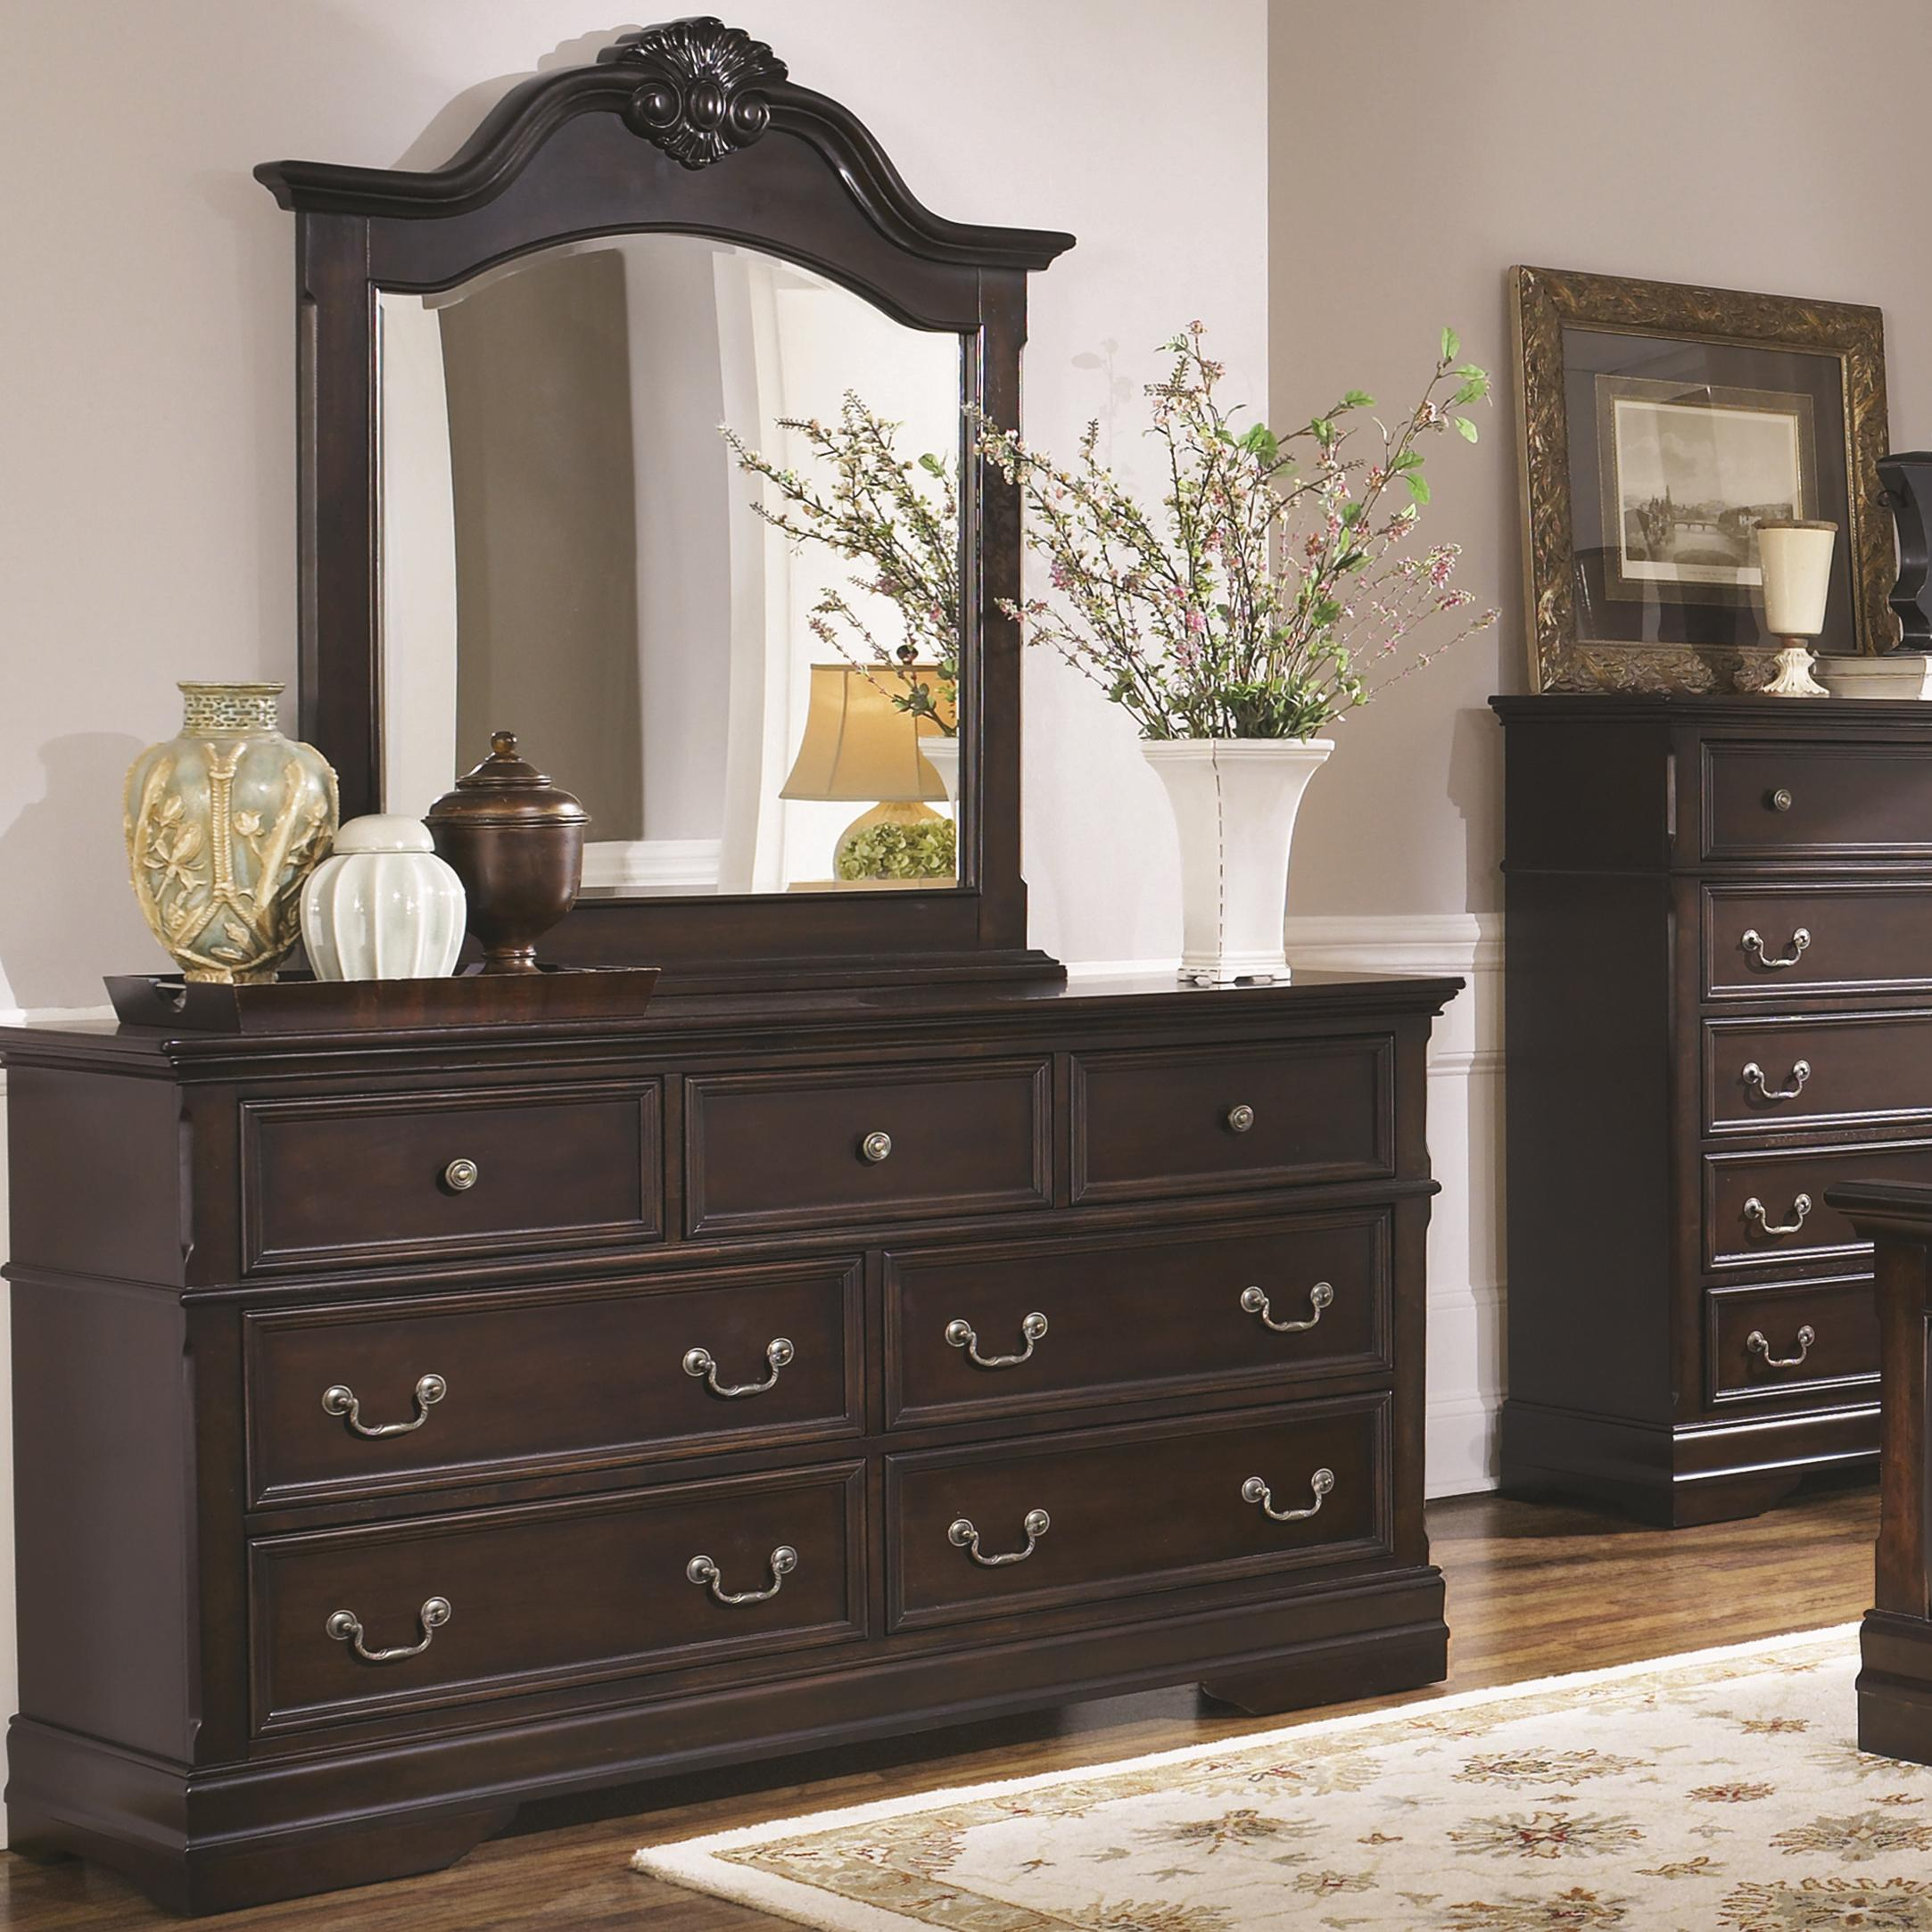 Coaster Cambridge Dresser and Mirror Set - Item Number: 203193+4